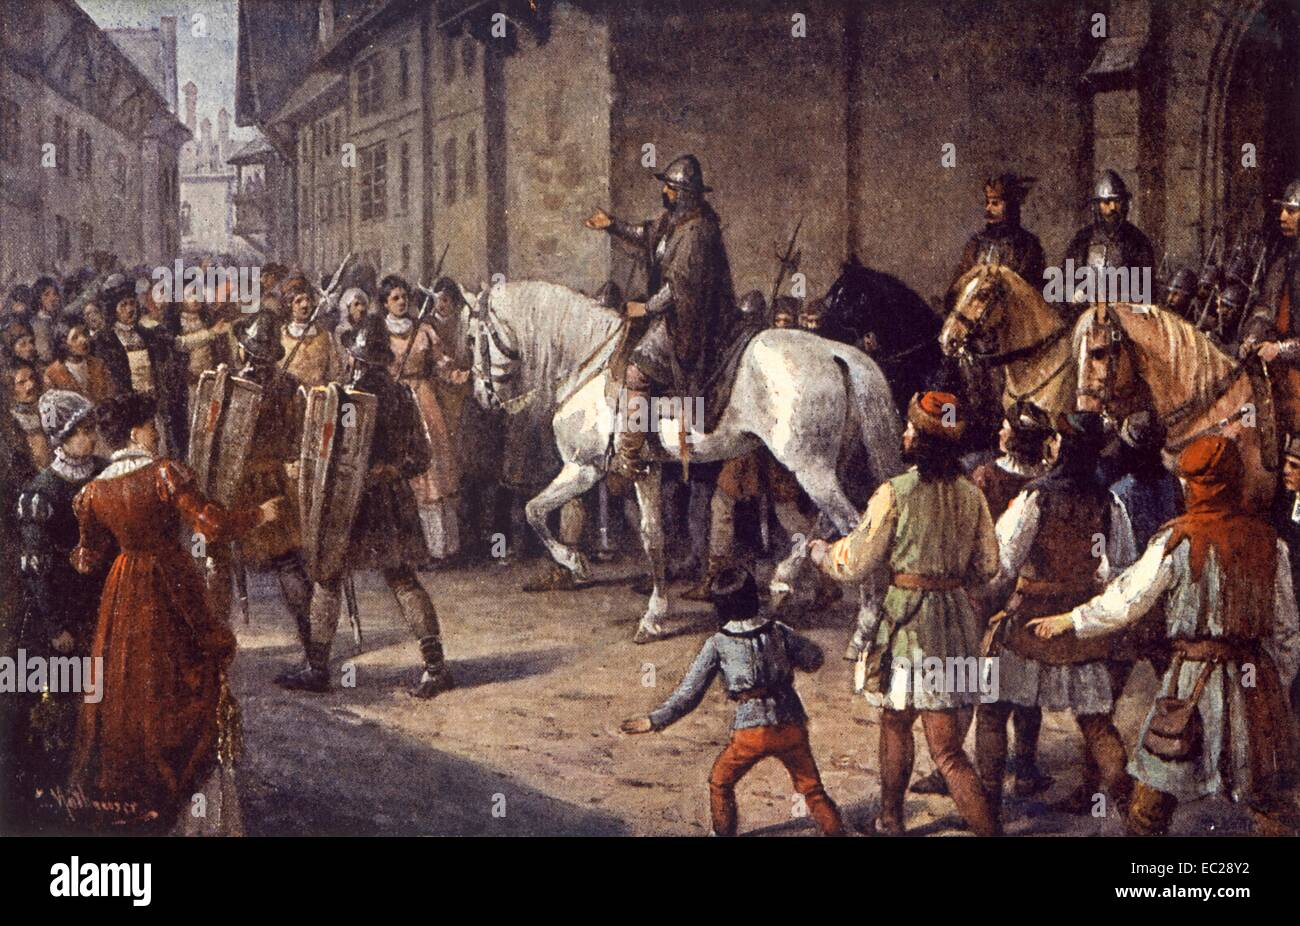 The Hussite leader Jan Zizka in Prague, 1420.